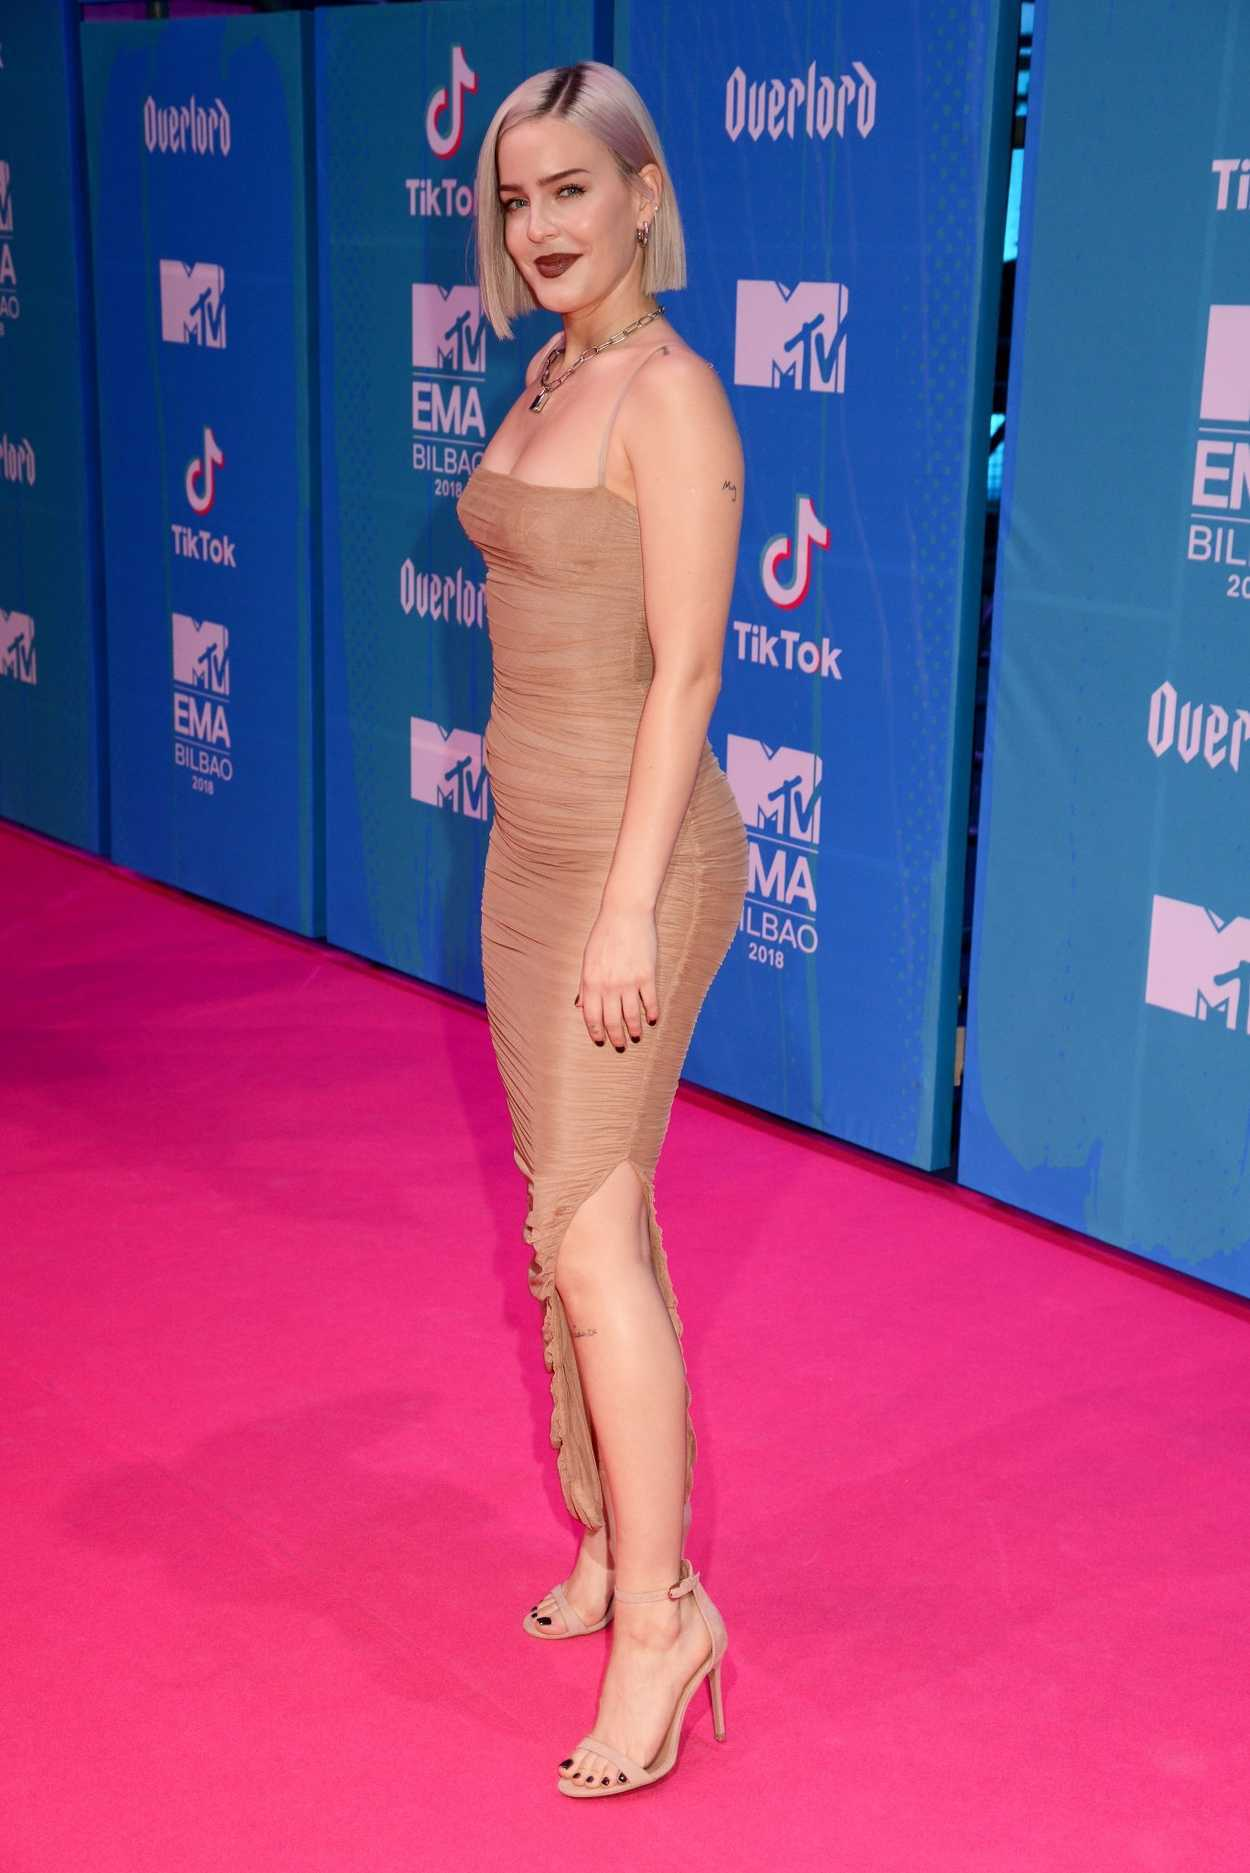 Anne Marie Attends 2018 MTV EMAs At The Bilbao Exhibition Centre In Bilbao Spain 11042018